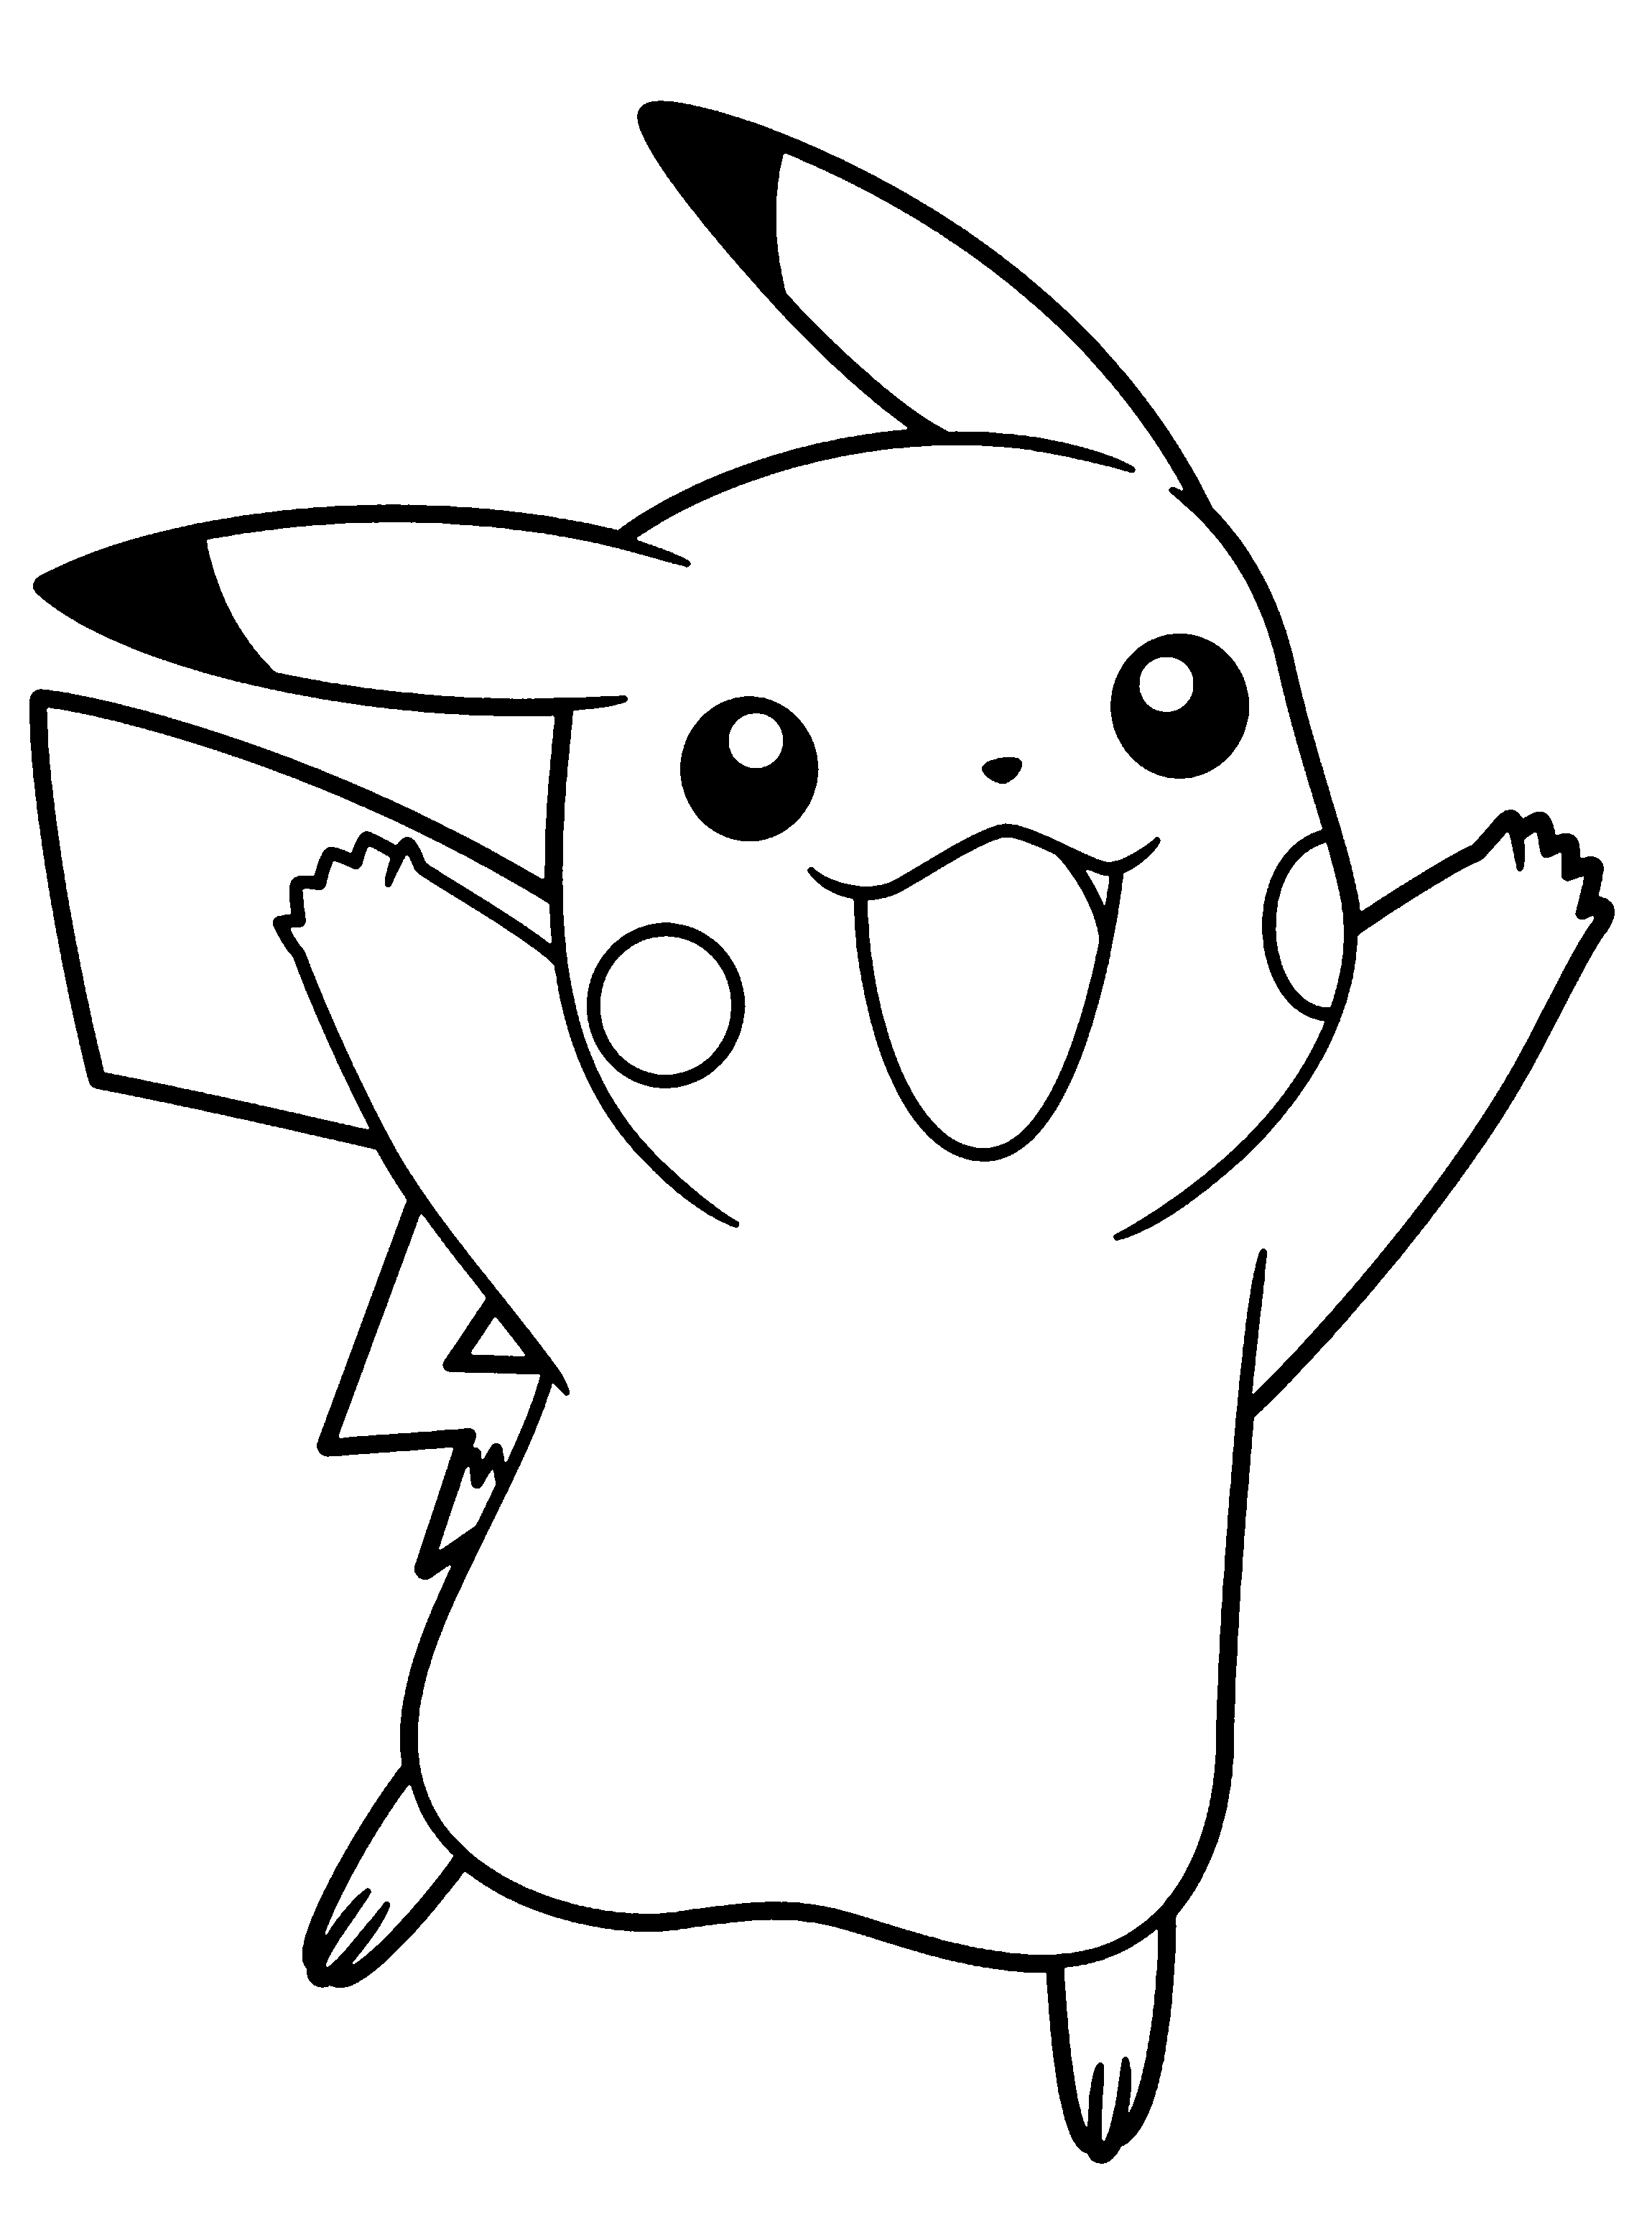 pikachu coloring pages pikachu coloring pages to download and print for free pages coloring pikachu